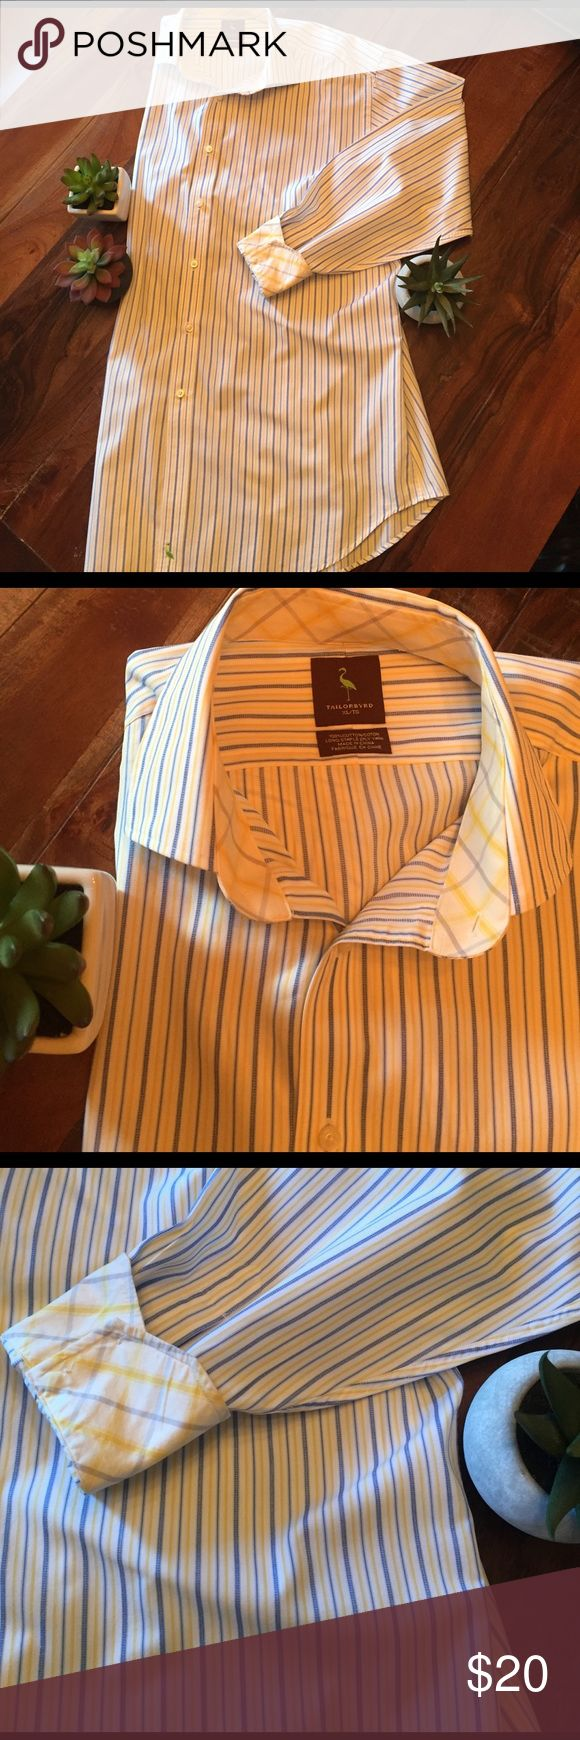 🌹Bundle me!🌹Men's blue/yellow dress shirt Men's Tailorbyrd blue and yellow pinstriped dress shirt w/ plaid cuff and neck detail. Size XL. Only worn once, excellent condition. Tailorbyrd Shirts Dress Shirts